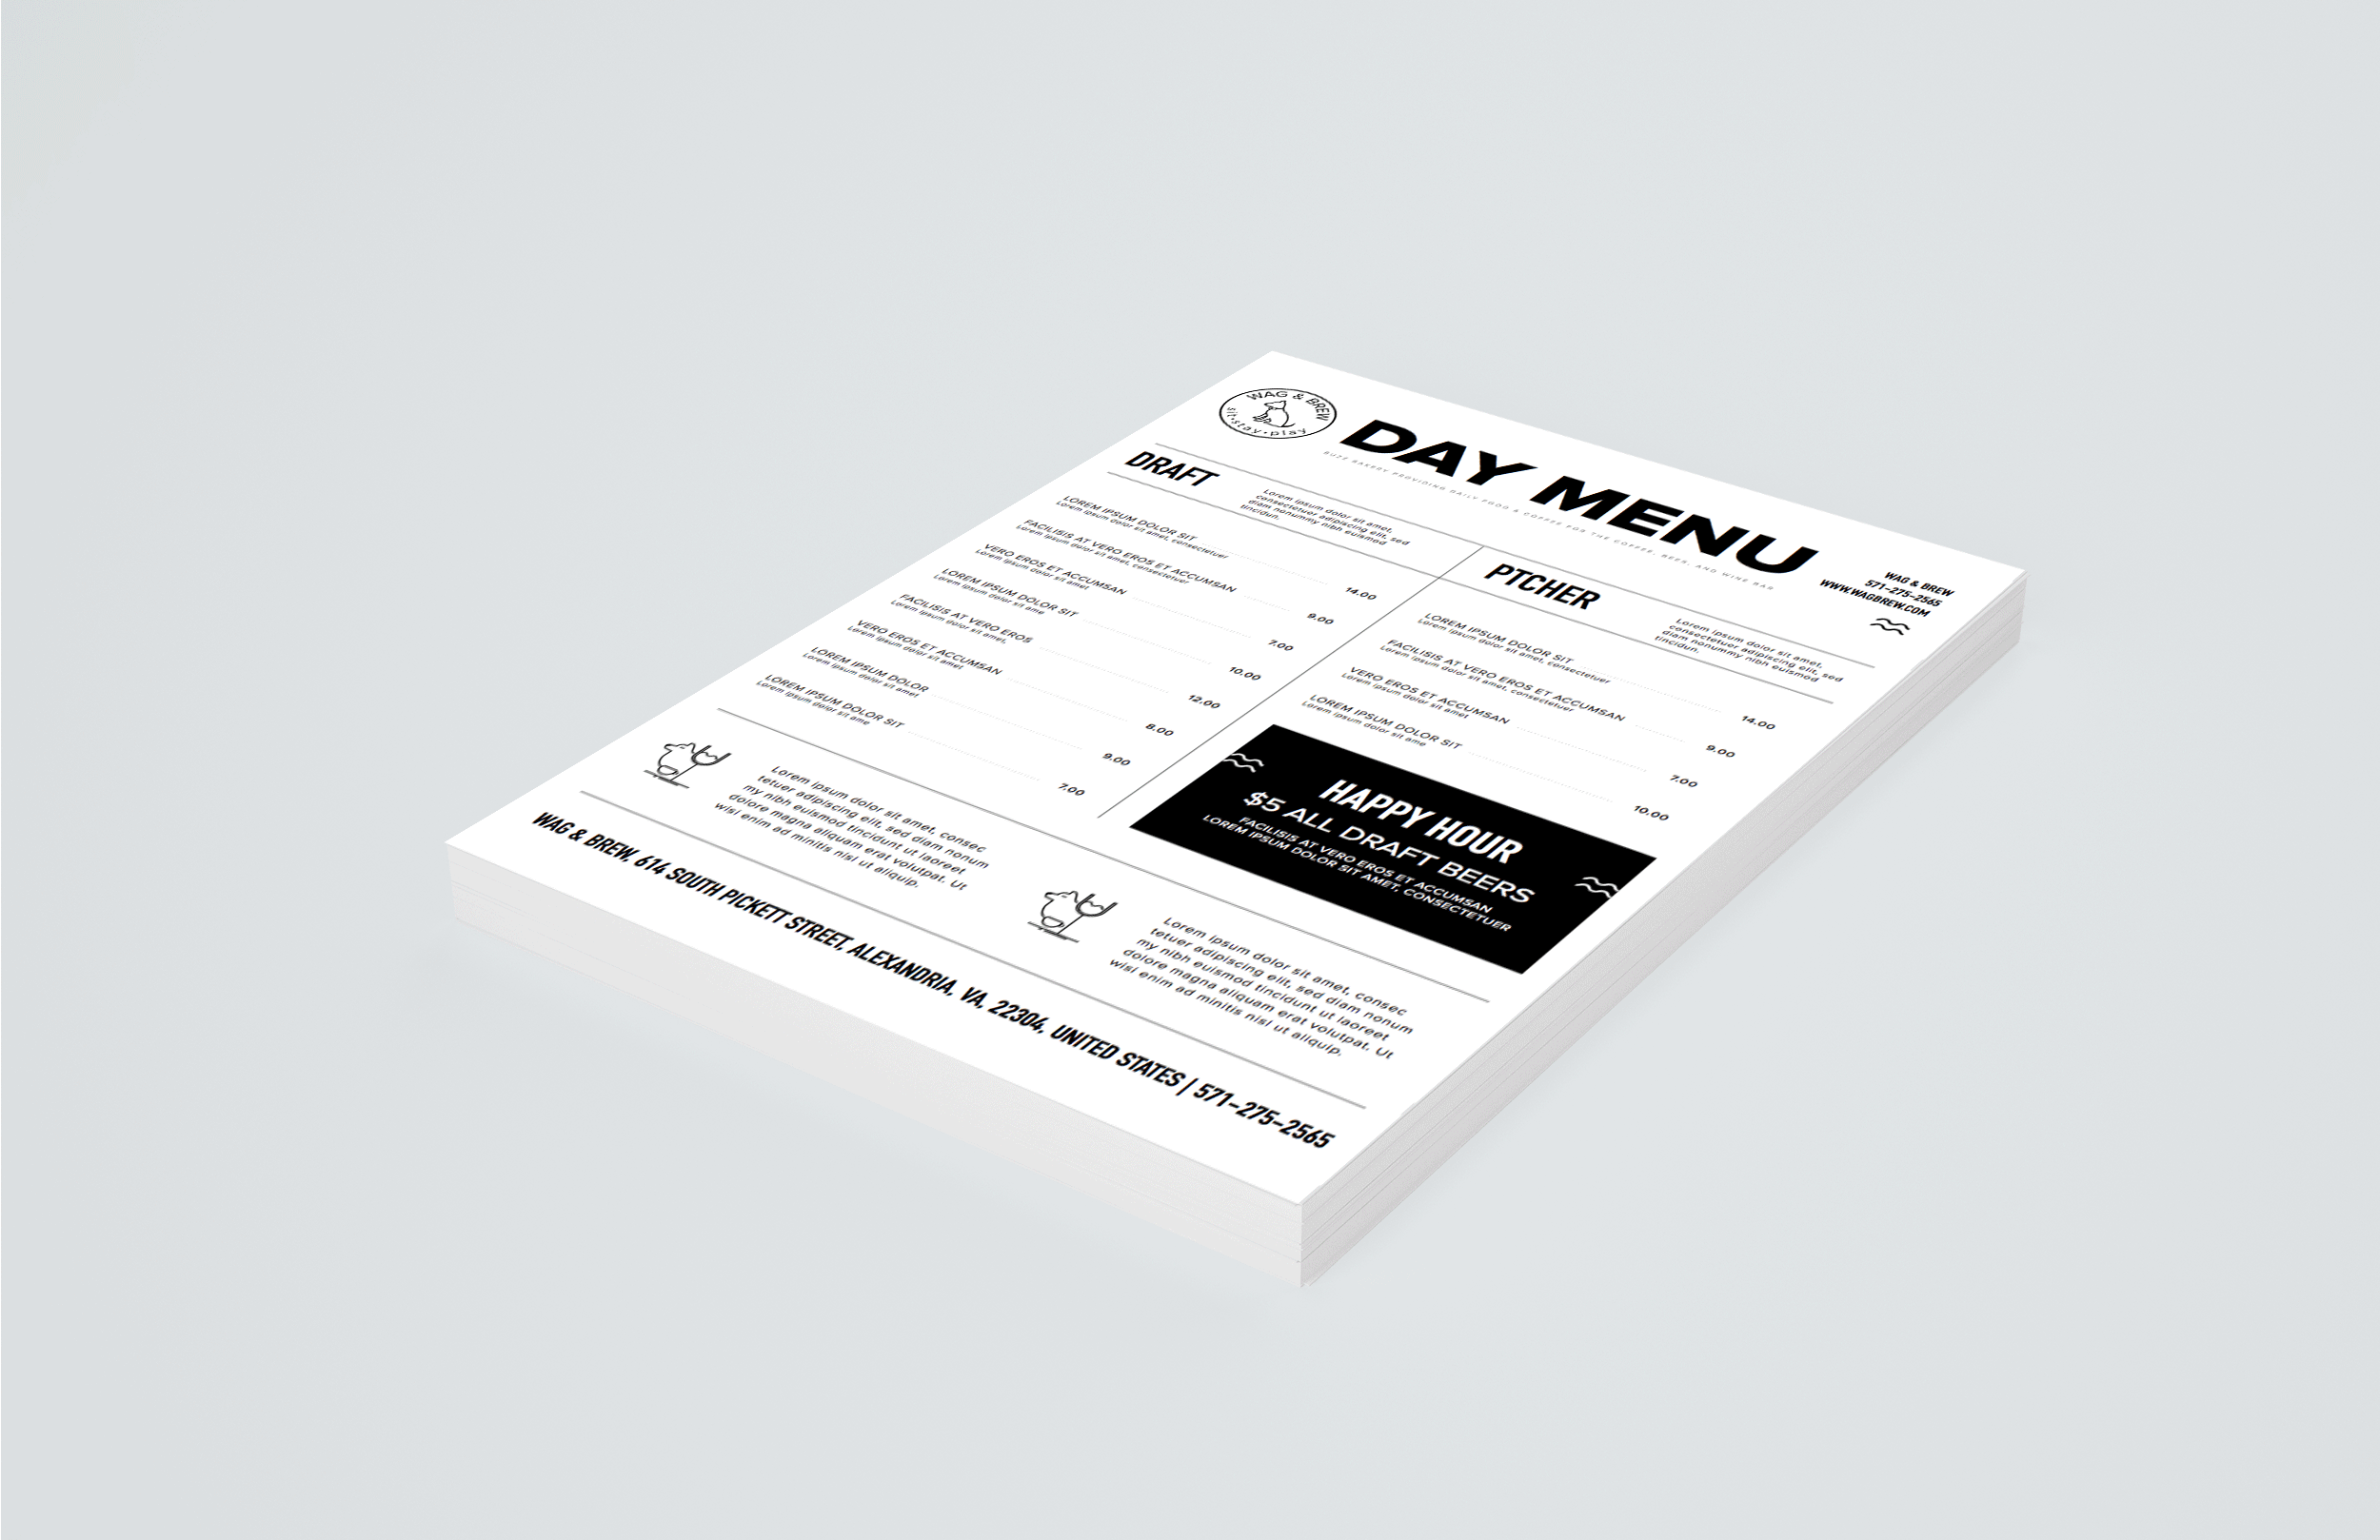 stationery-01-01-01.png